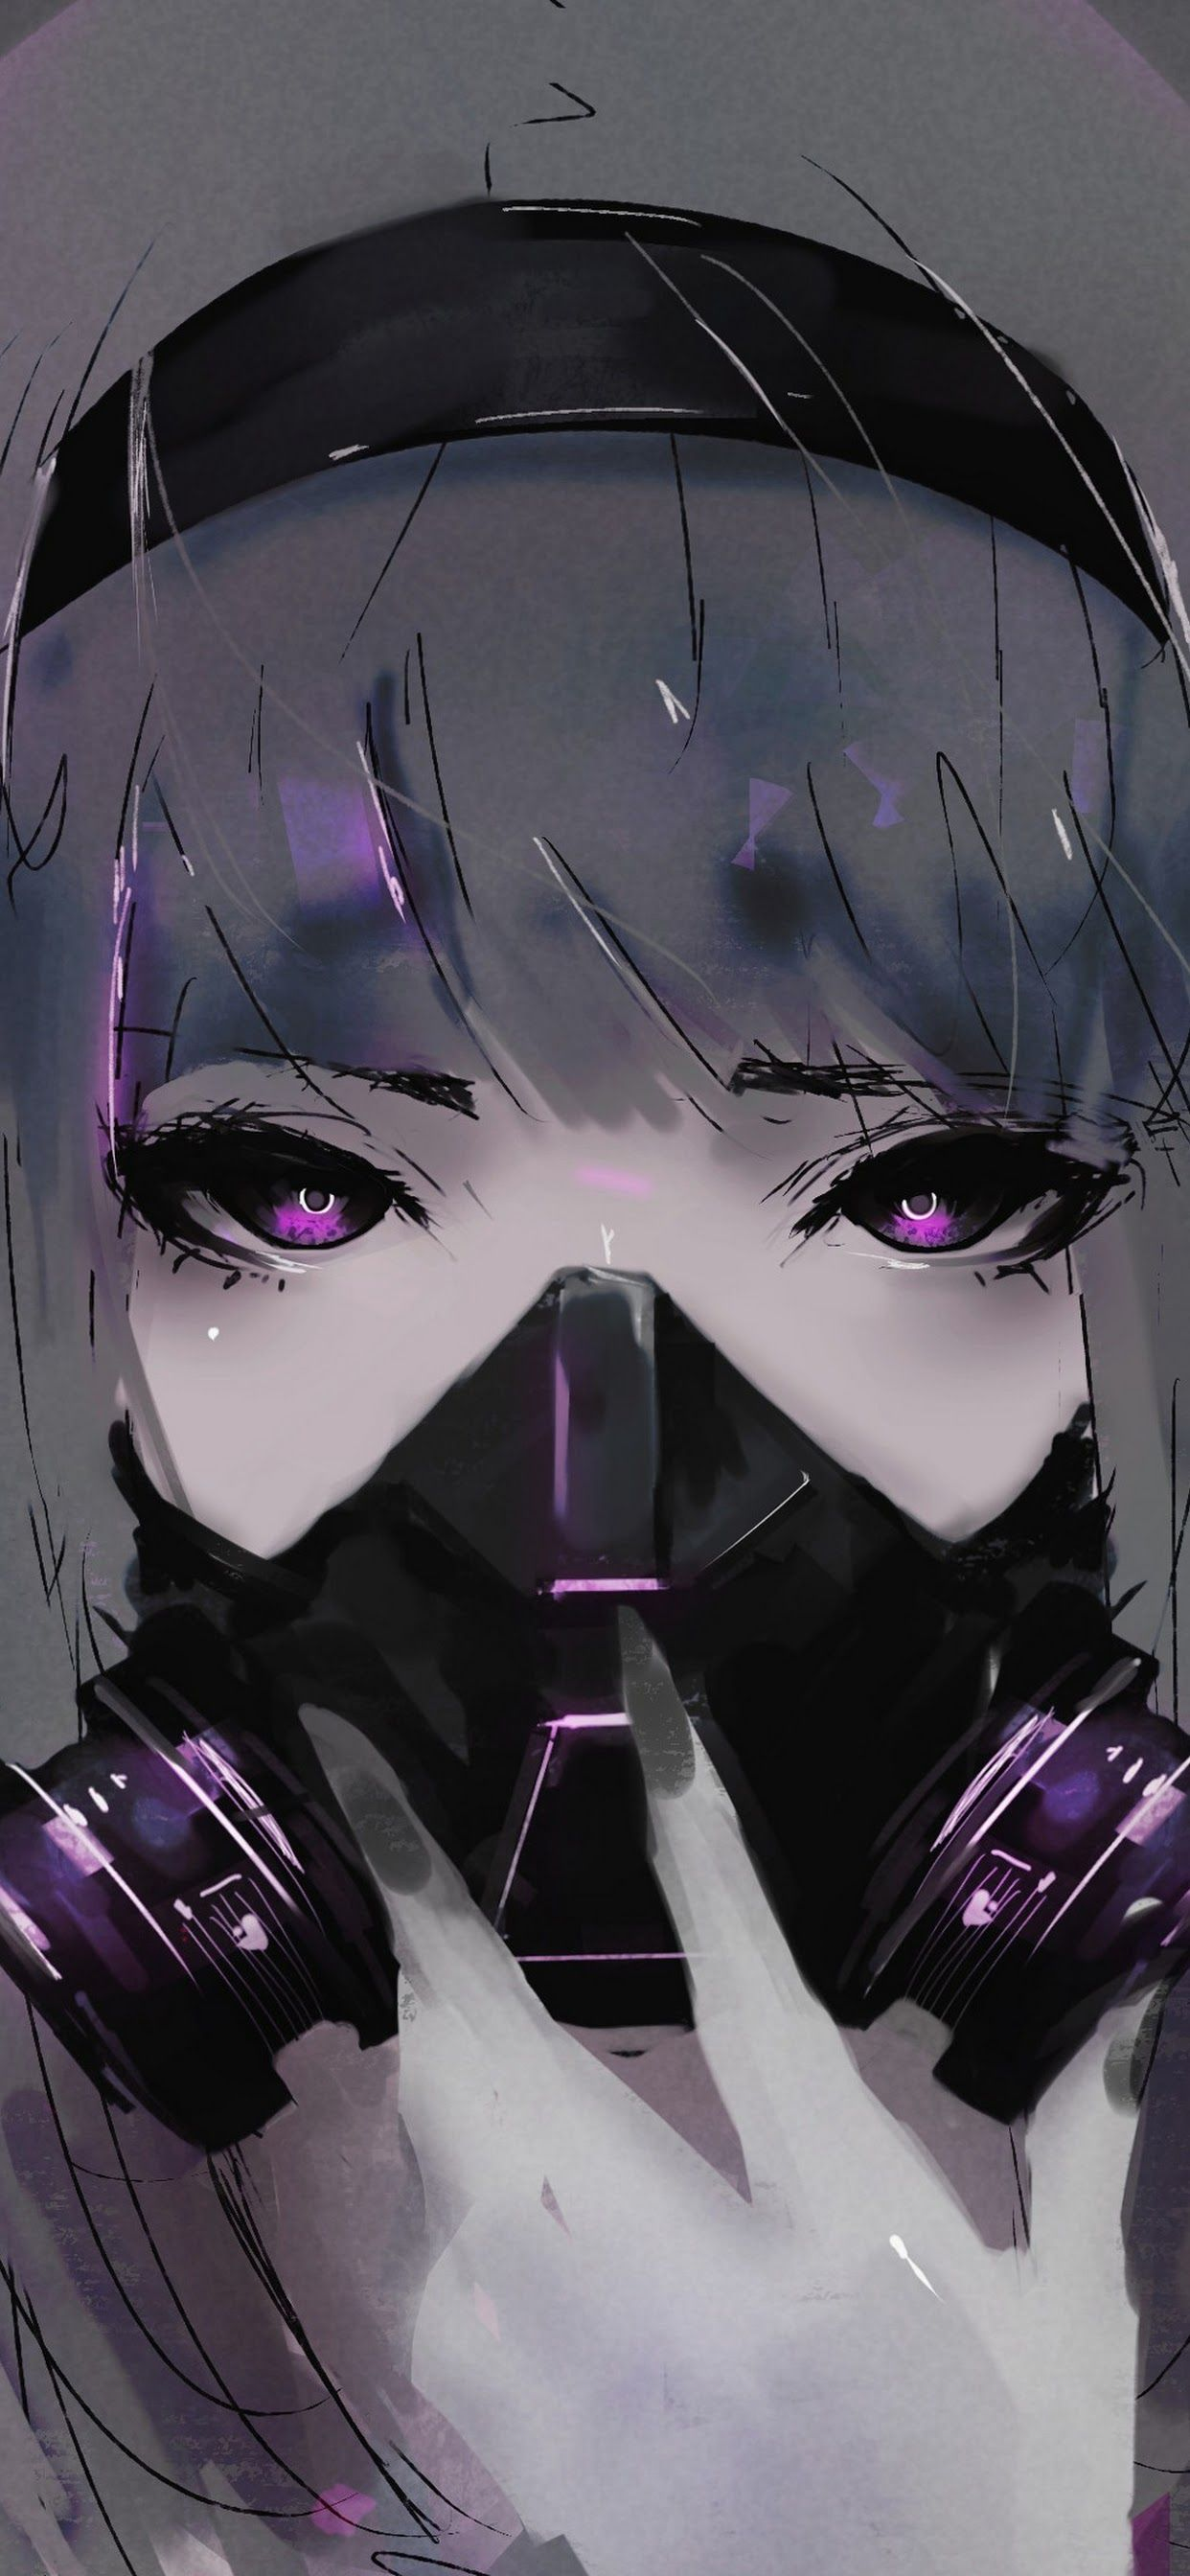 Free download Anime Girl Gas Mask 4K 3840x2160 Wallpapers 13 [1242x2688] for your Desktop, Mobile & Tablet